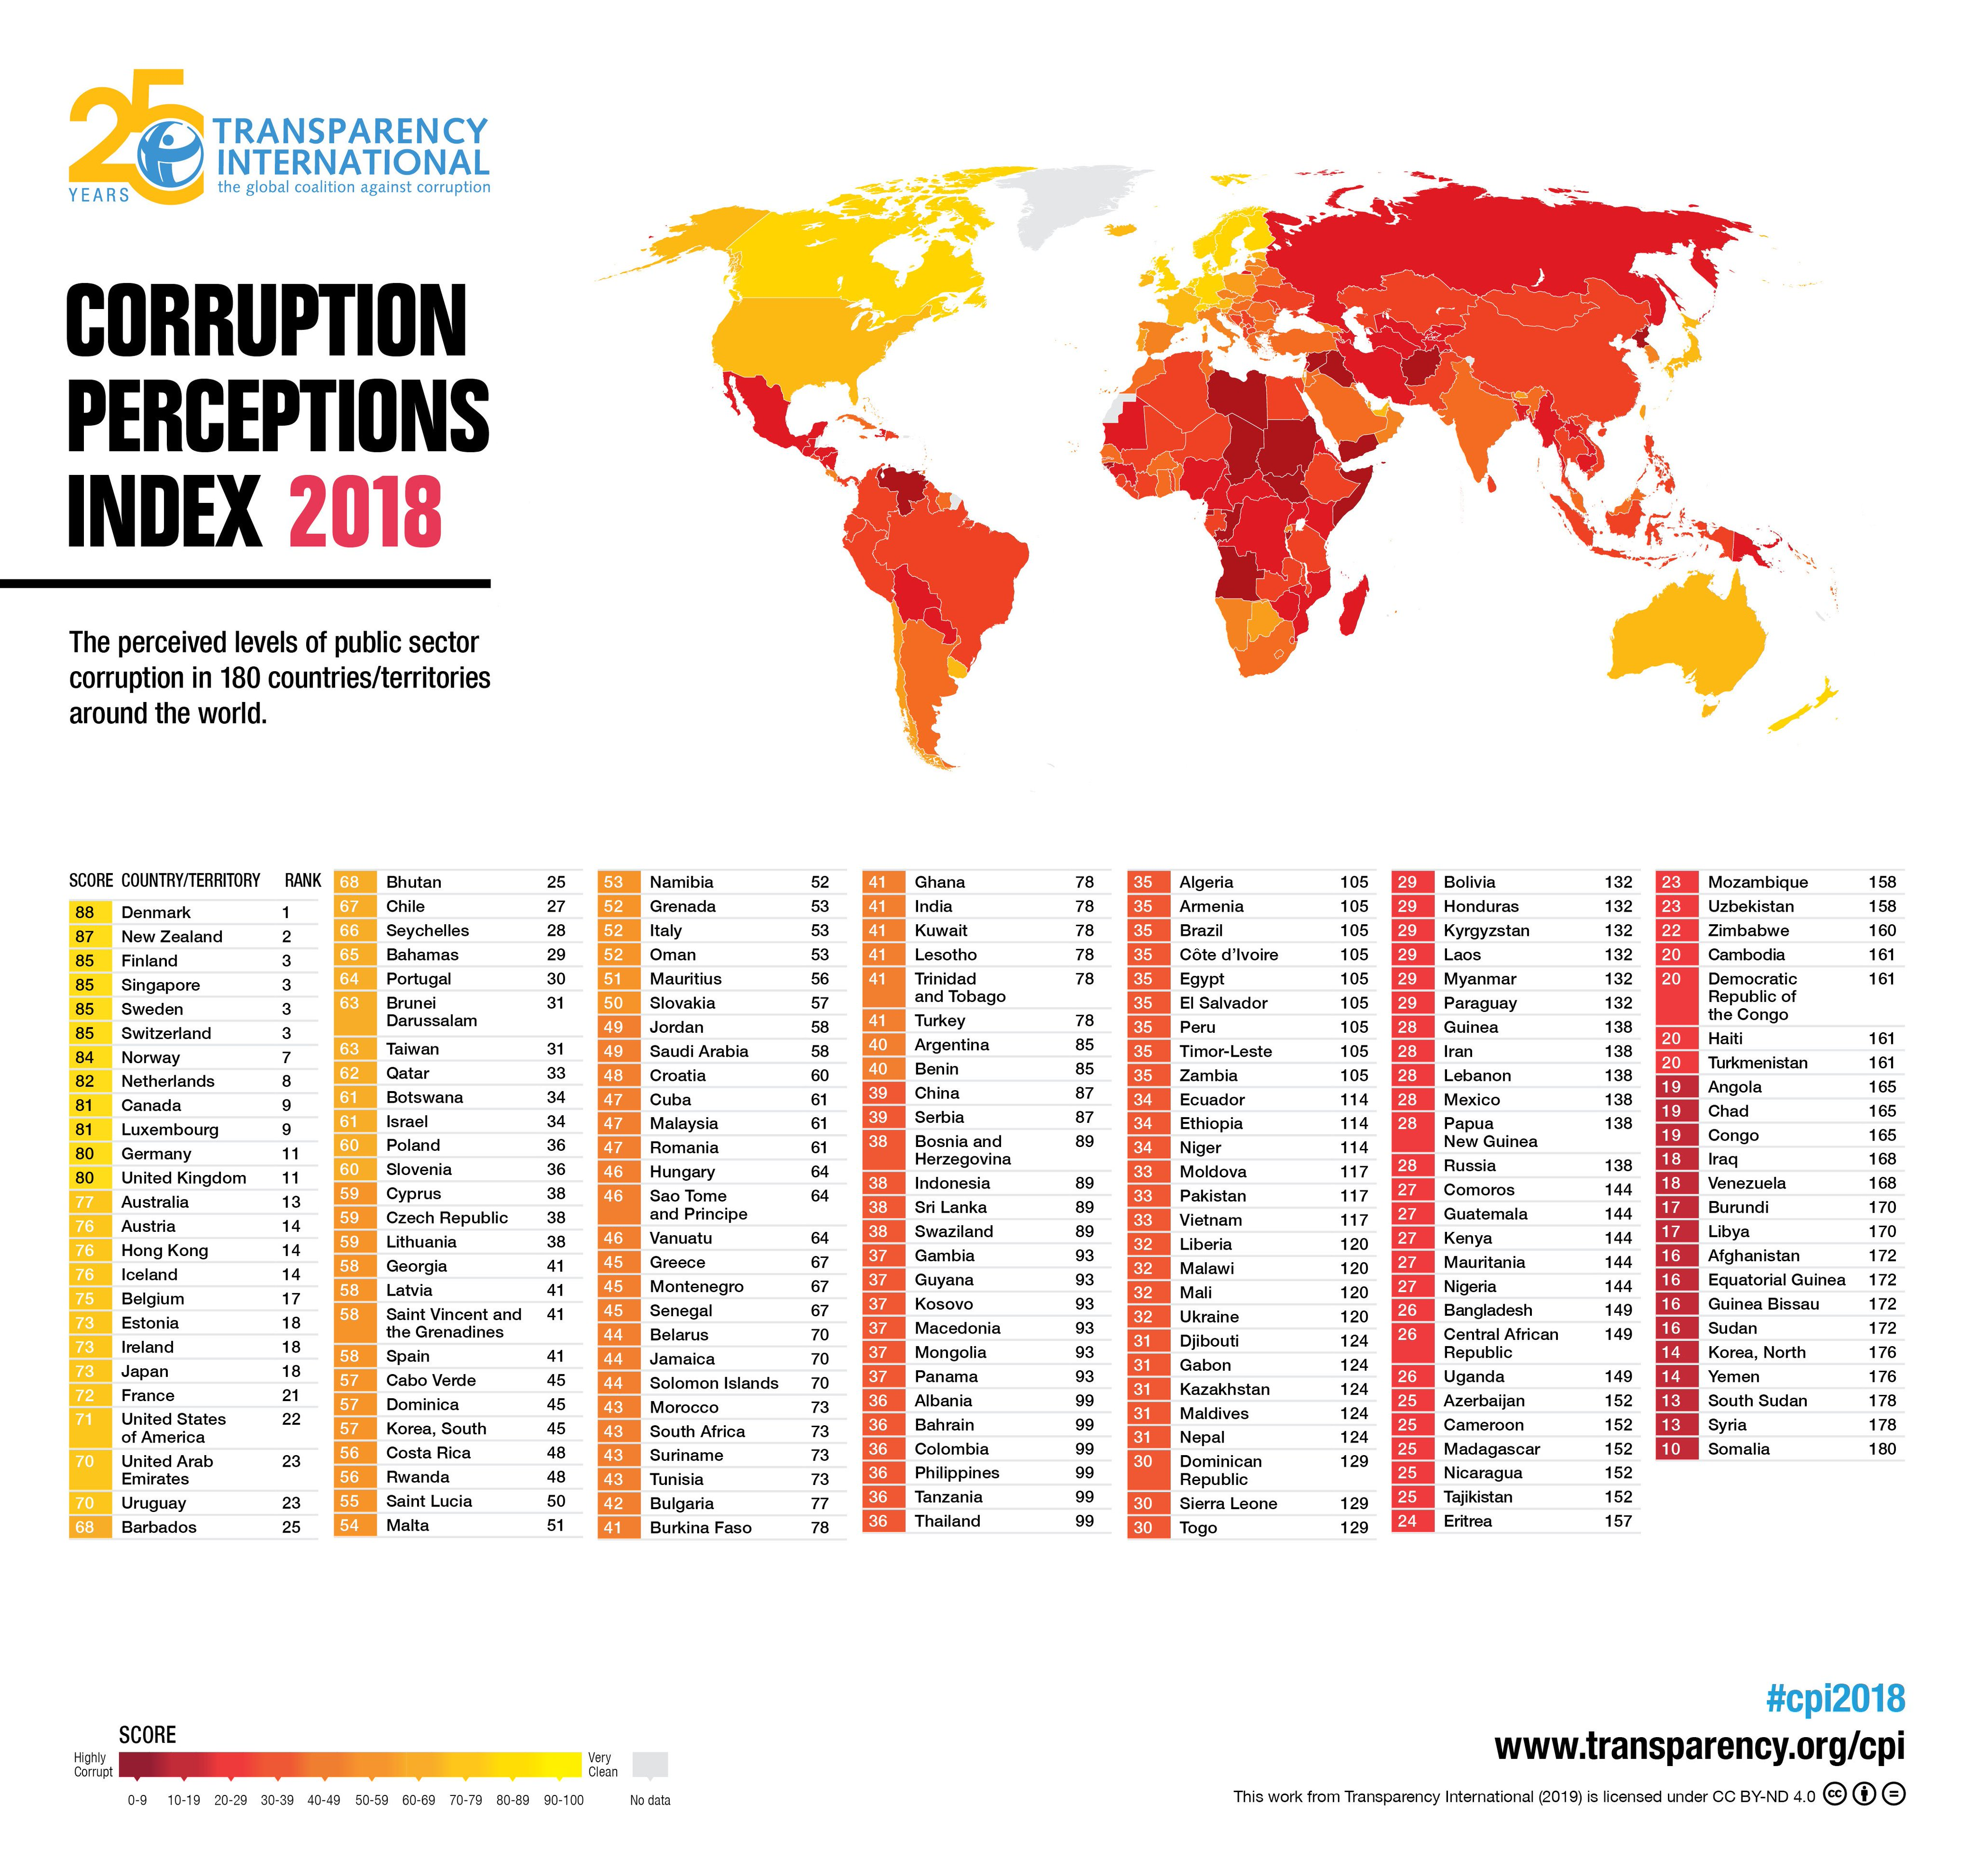 2018 Corruption Perceptions Index